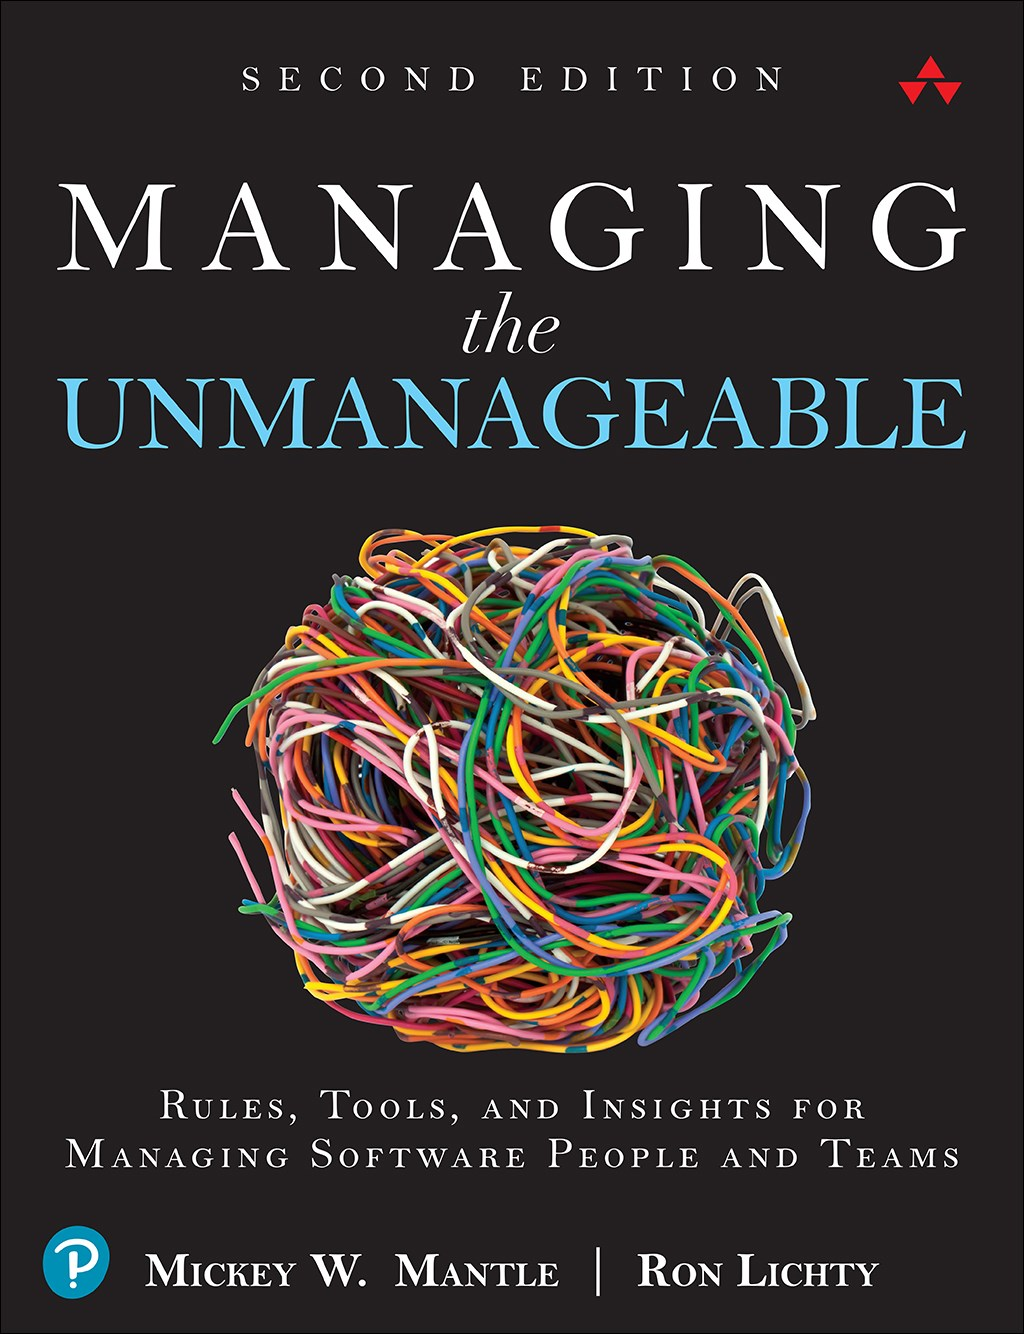 Managing the Unmanageable: Rules, Tools, and Insights for Managing Software People and Teams, 2nd Edition